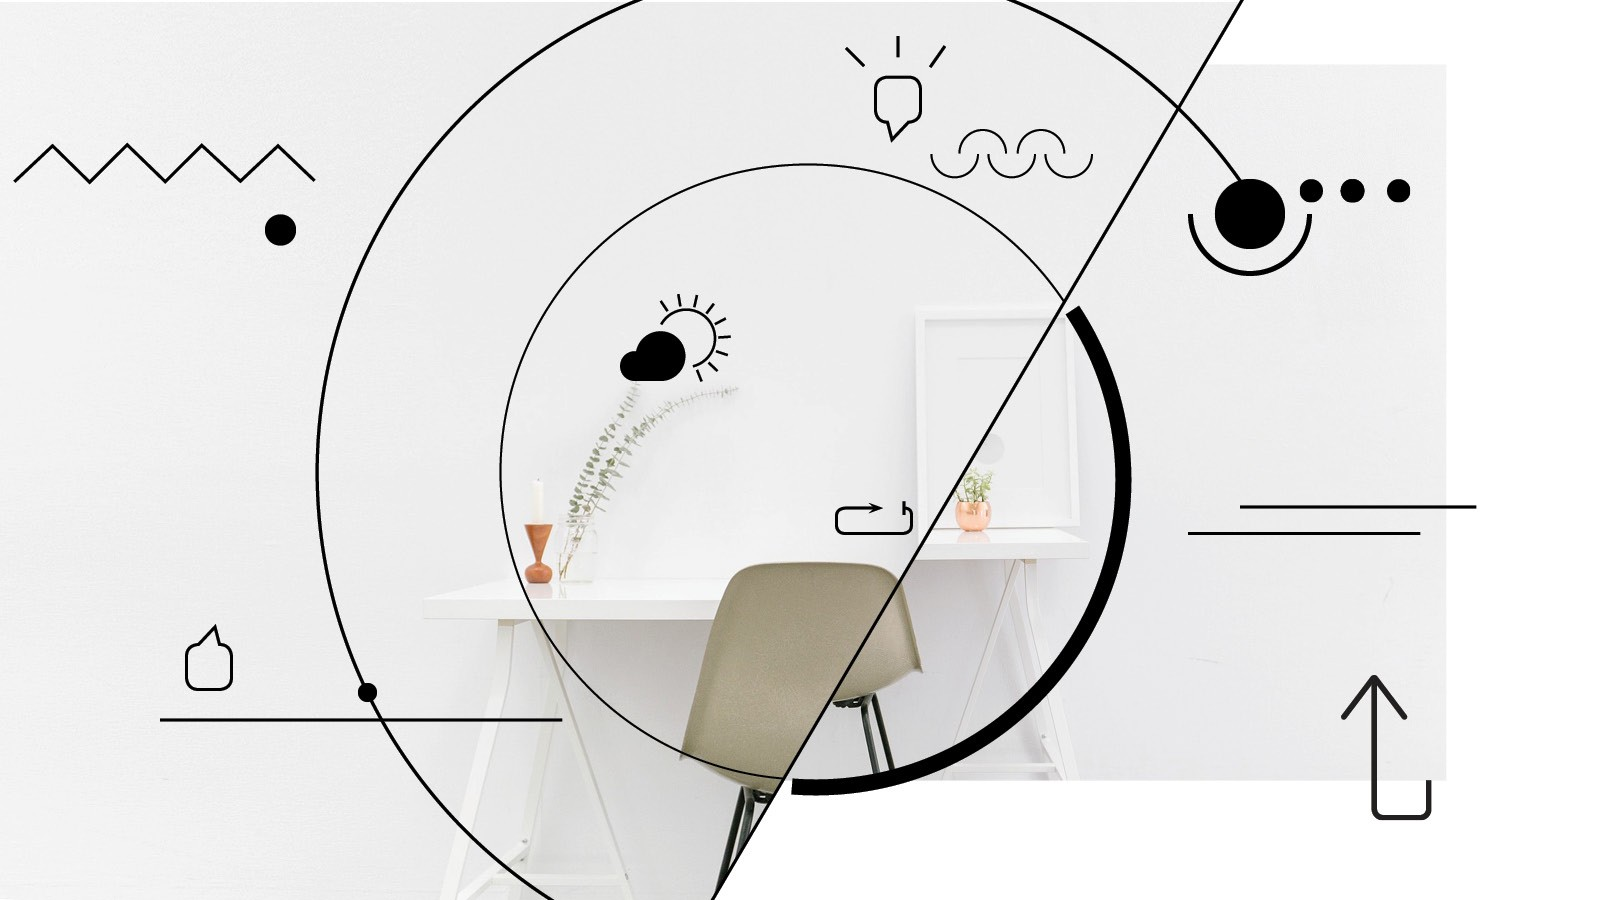 Icon illustrations set over image of desk and chair